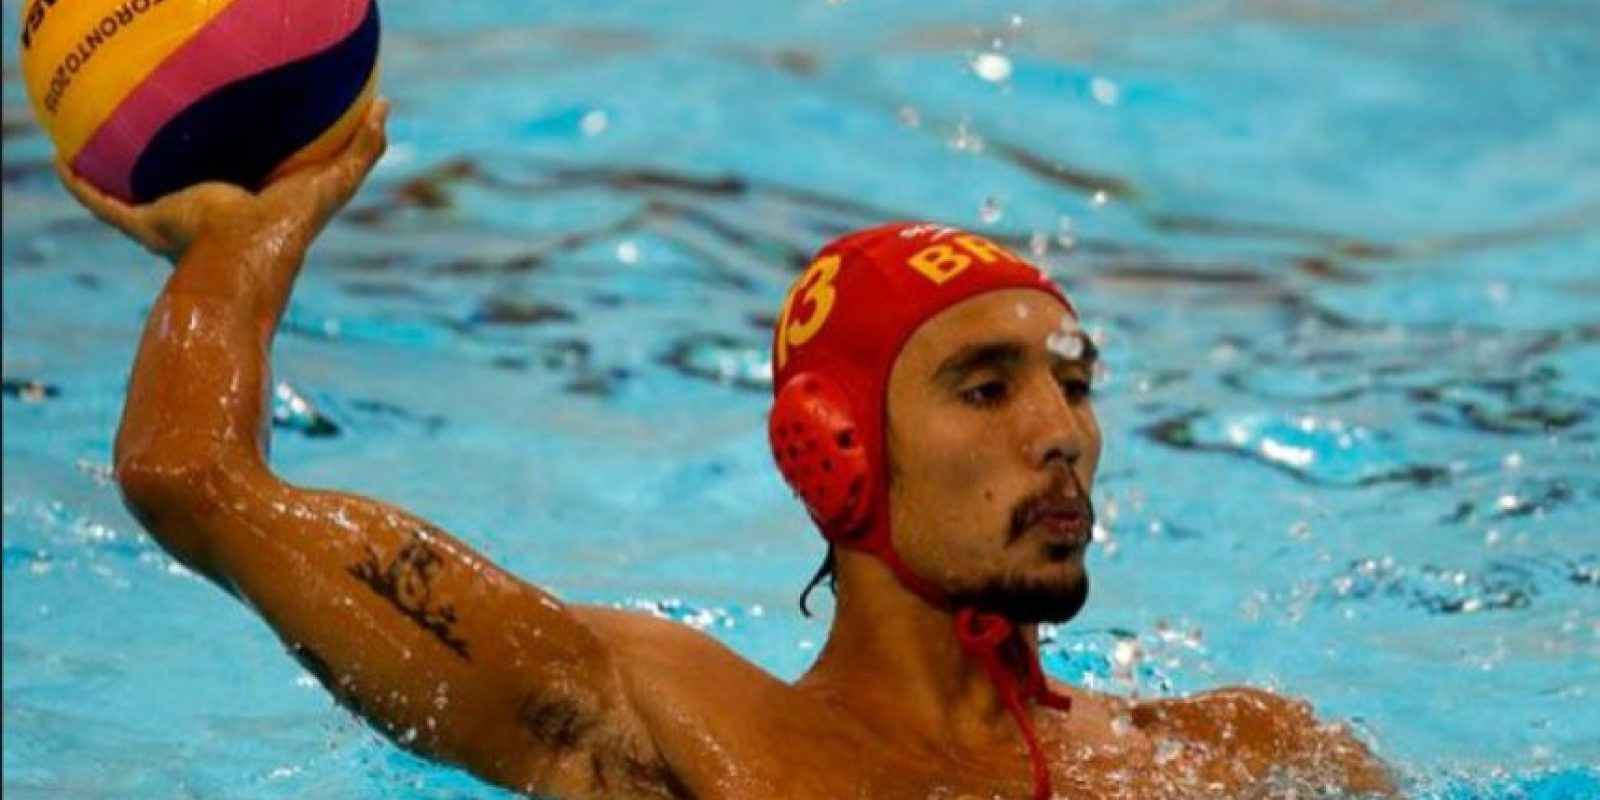 Thye Mattos Ventura Bezerra (jugador de waterpolo) Foto: Getty Images